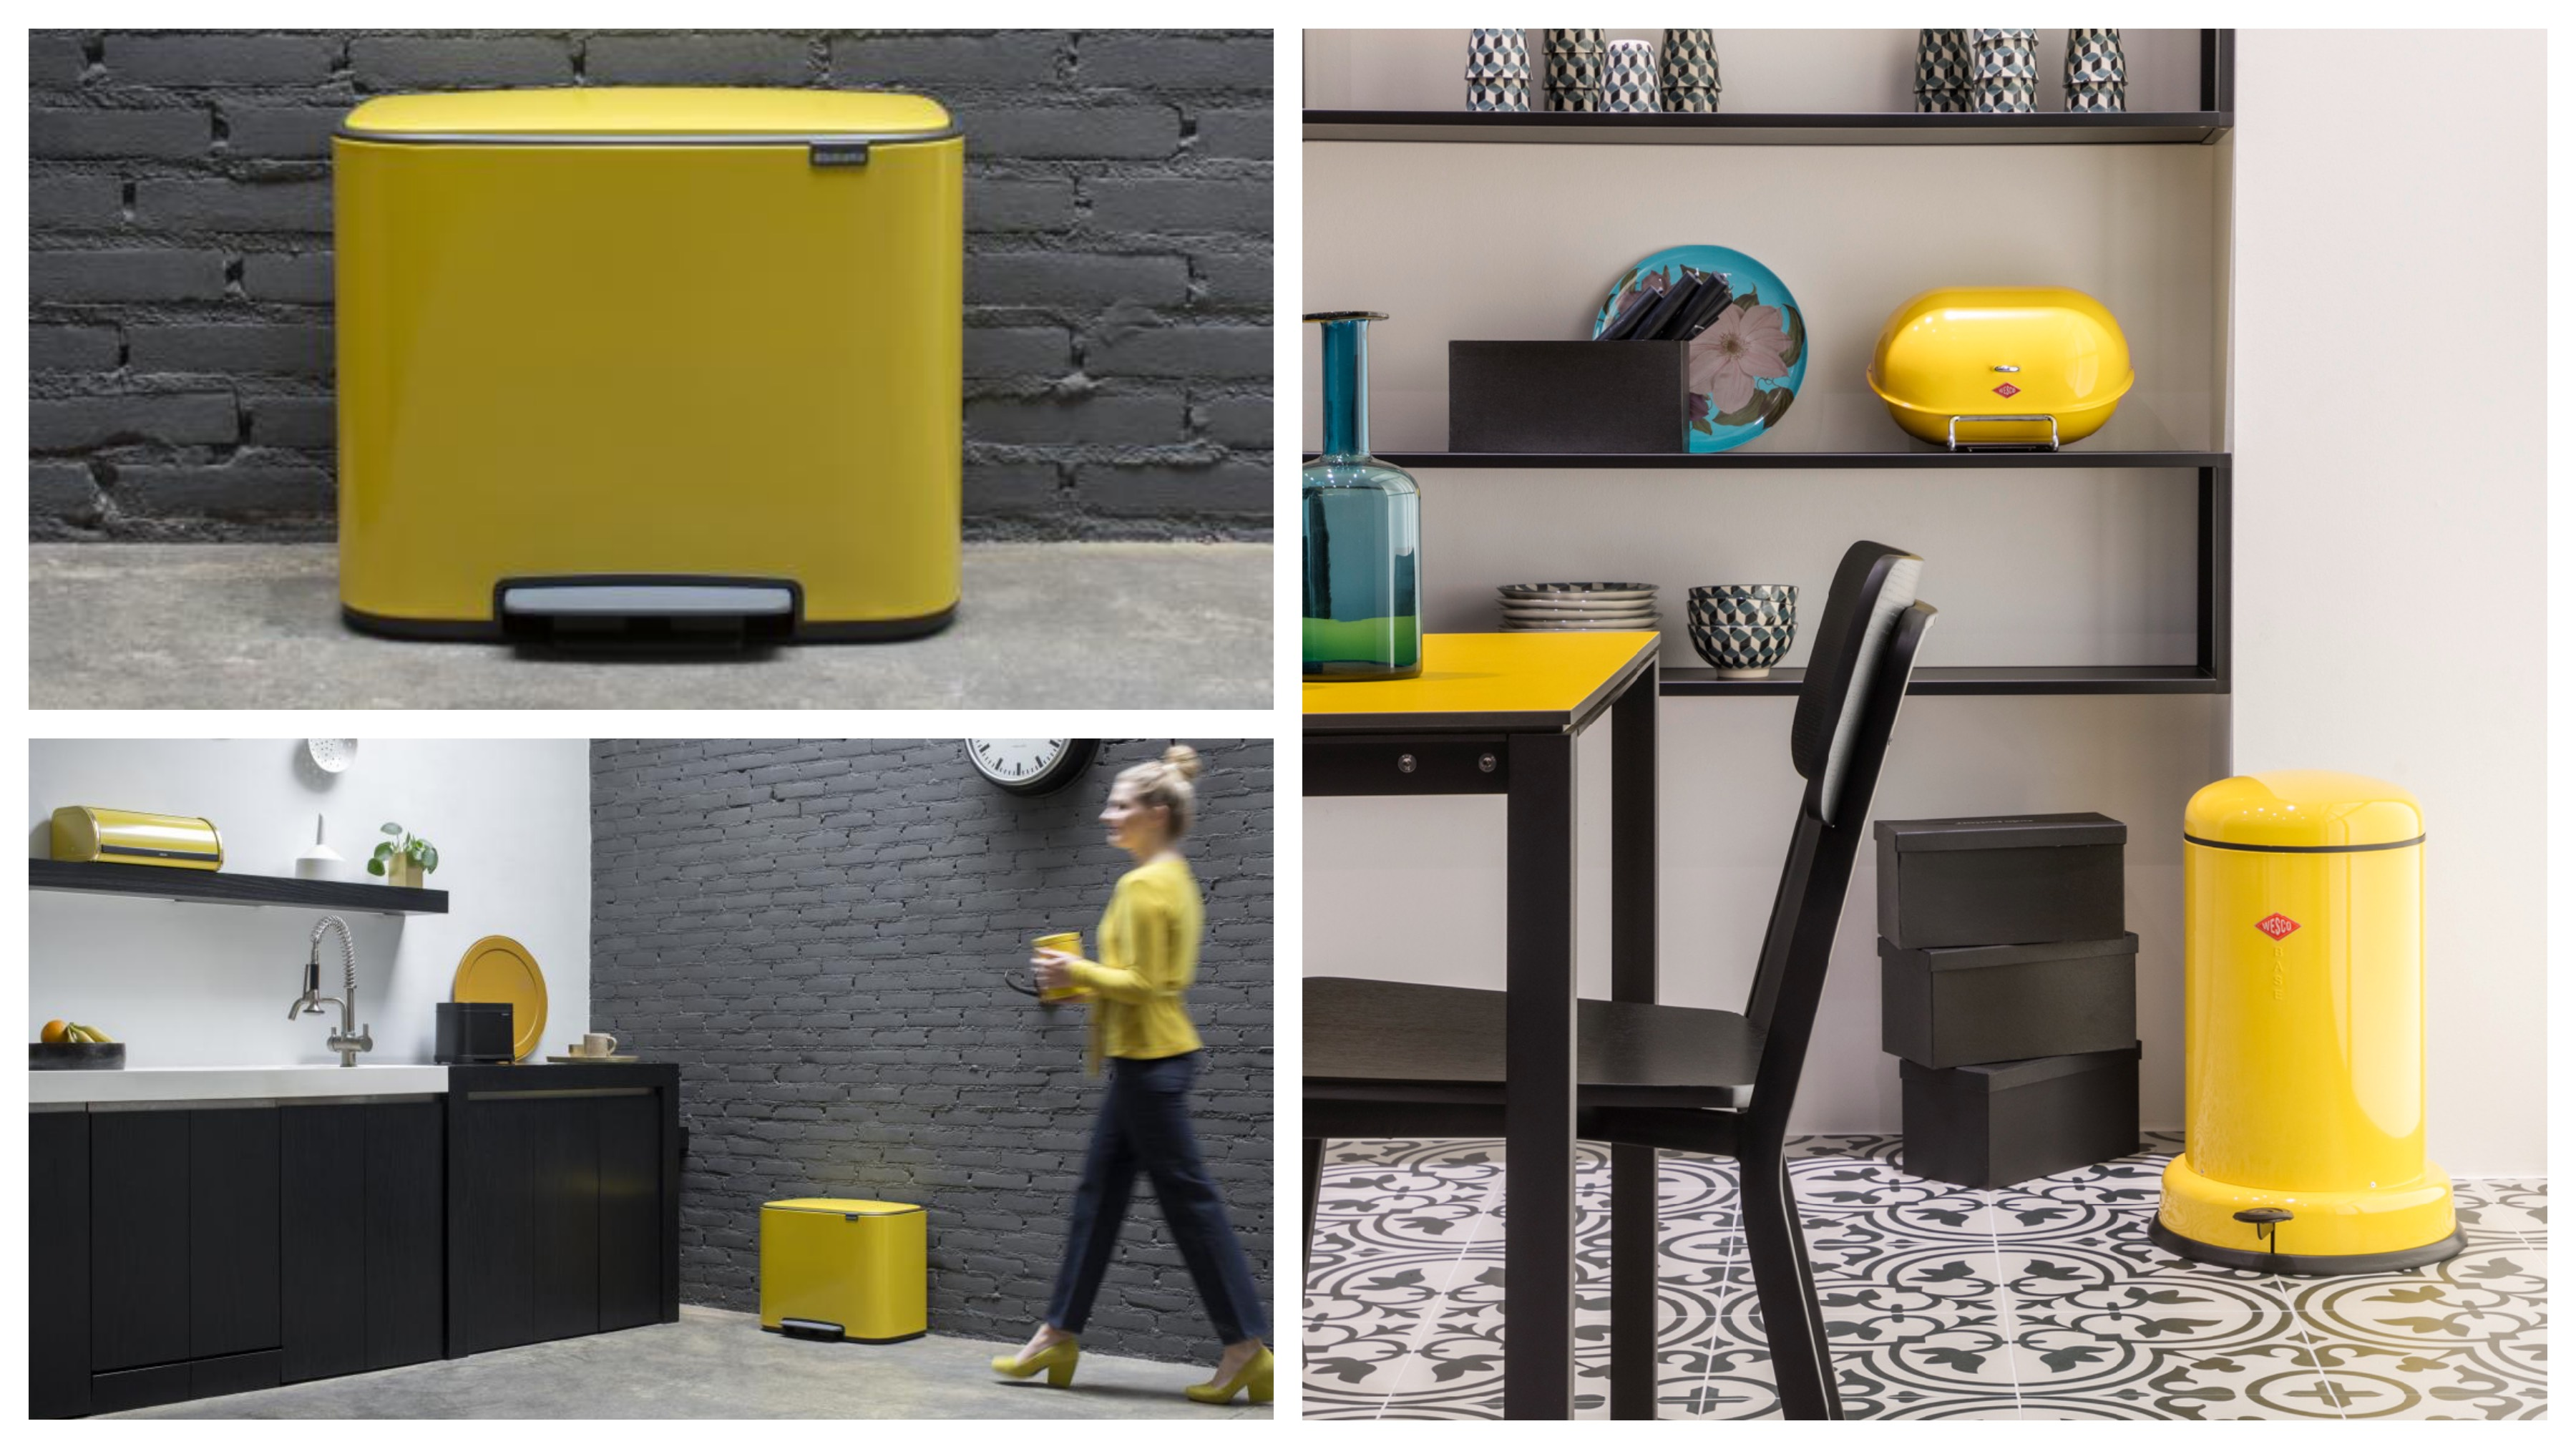 Bring the yellow trend into your kitchen with one of our yellow bins